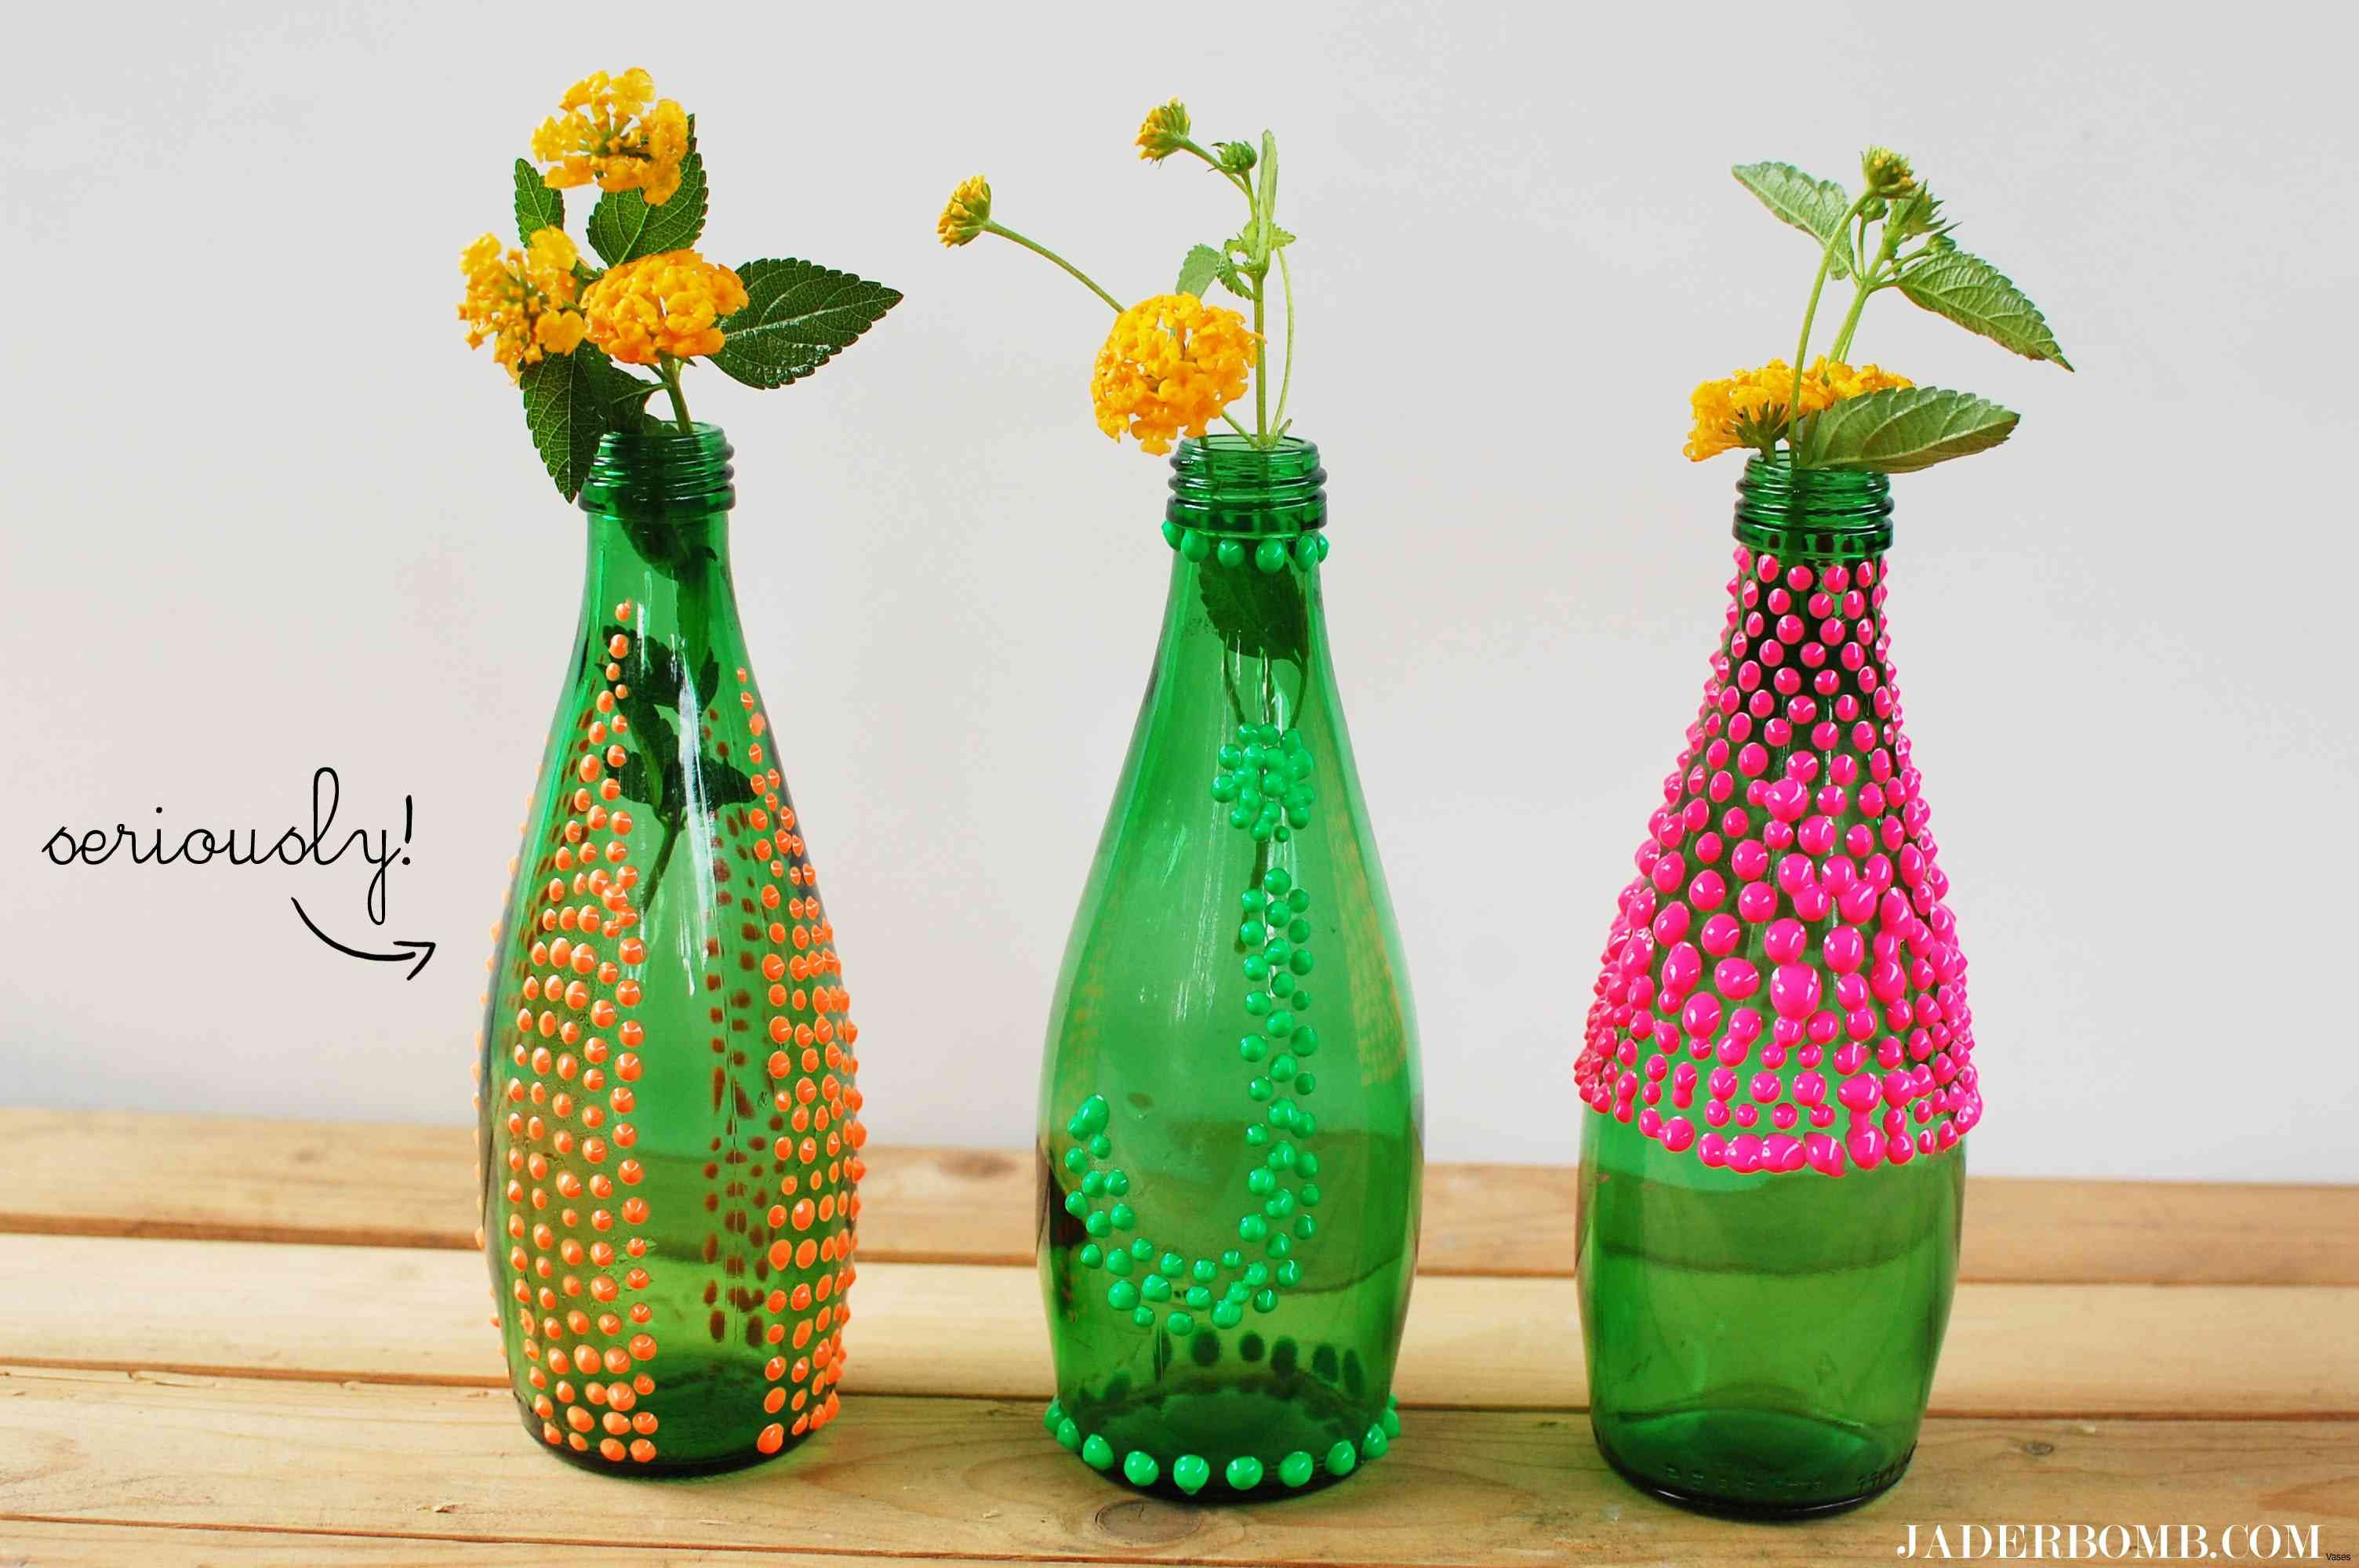 luxury vases for sale of wide glass vase image paint a picture luxury h vases paint vase i 0d in paint a picture luxury h vases paint vase i 0d with glue and food